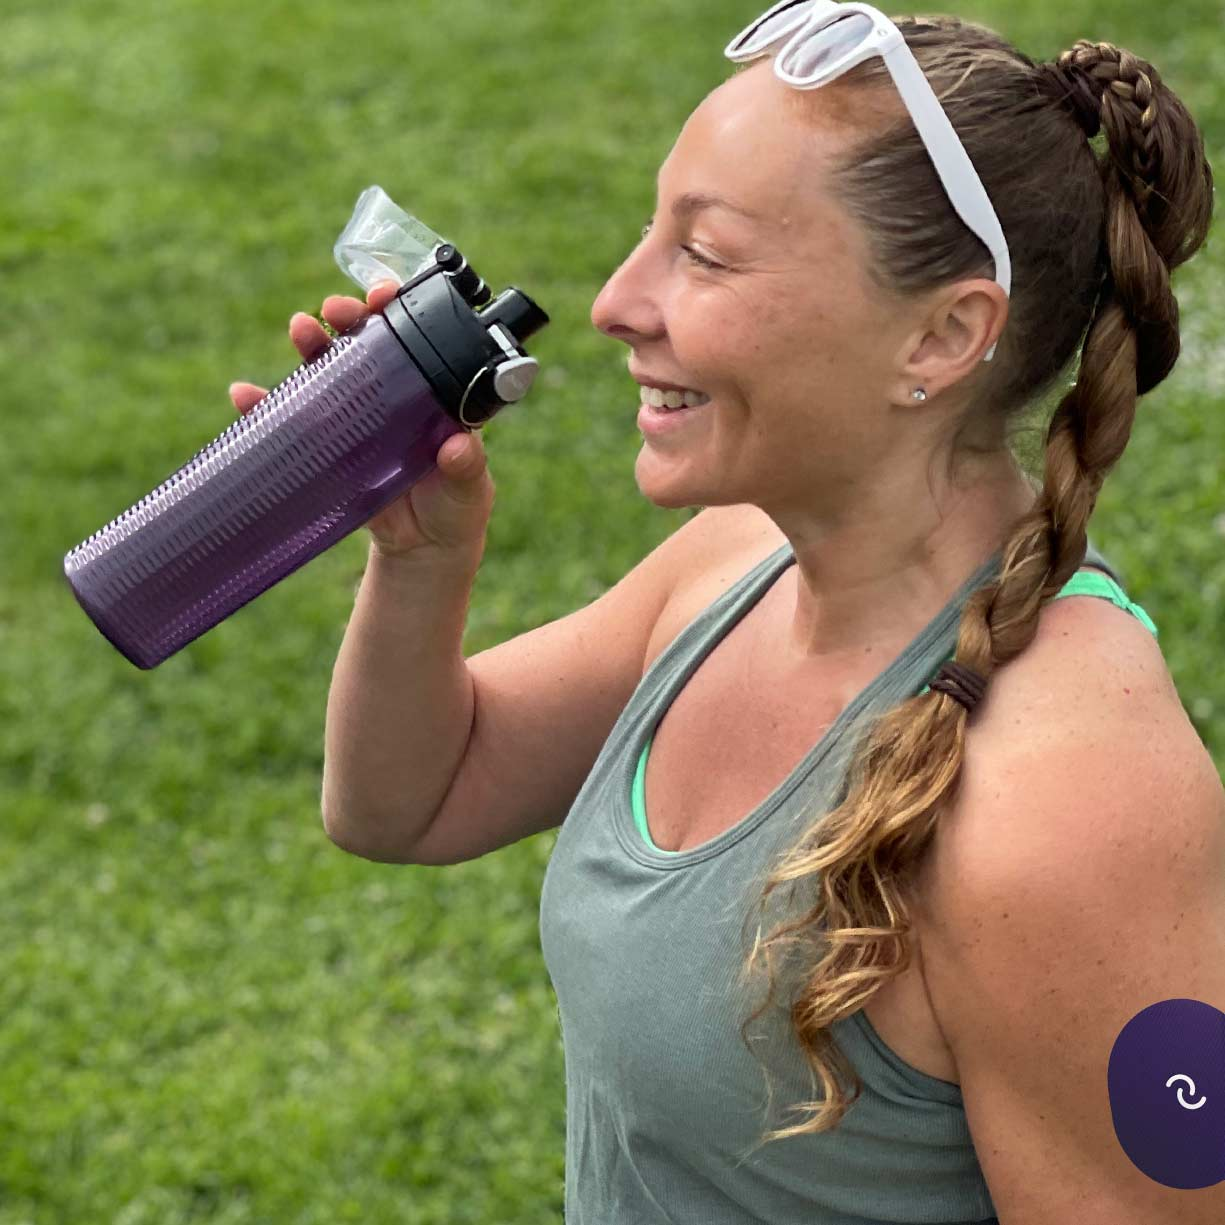 A white woman with a blond braid standing in a park. She's smiling and about to drink water from a reusable water bottle.